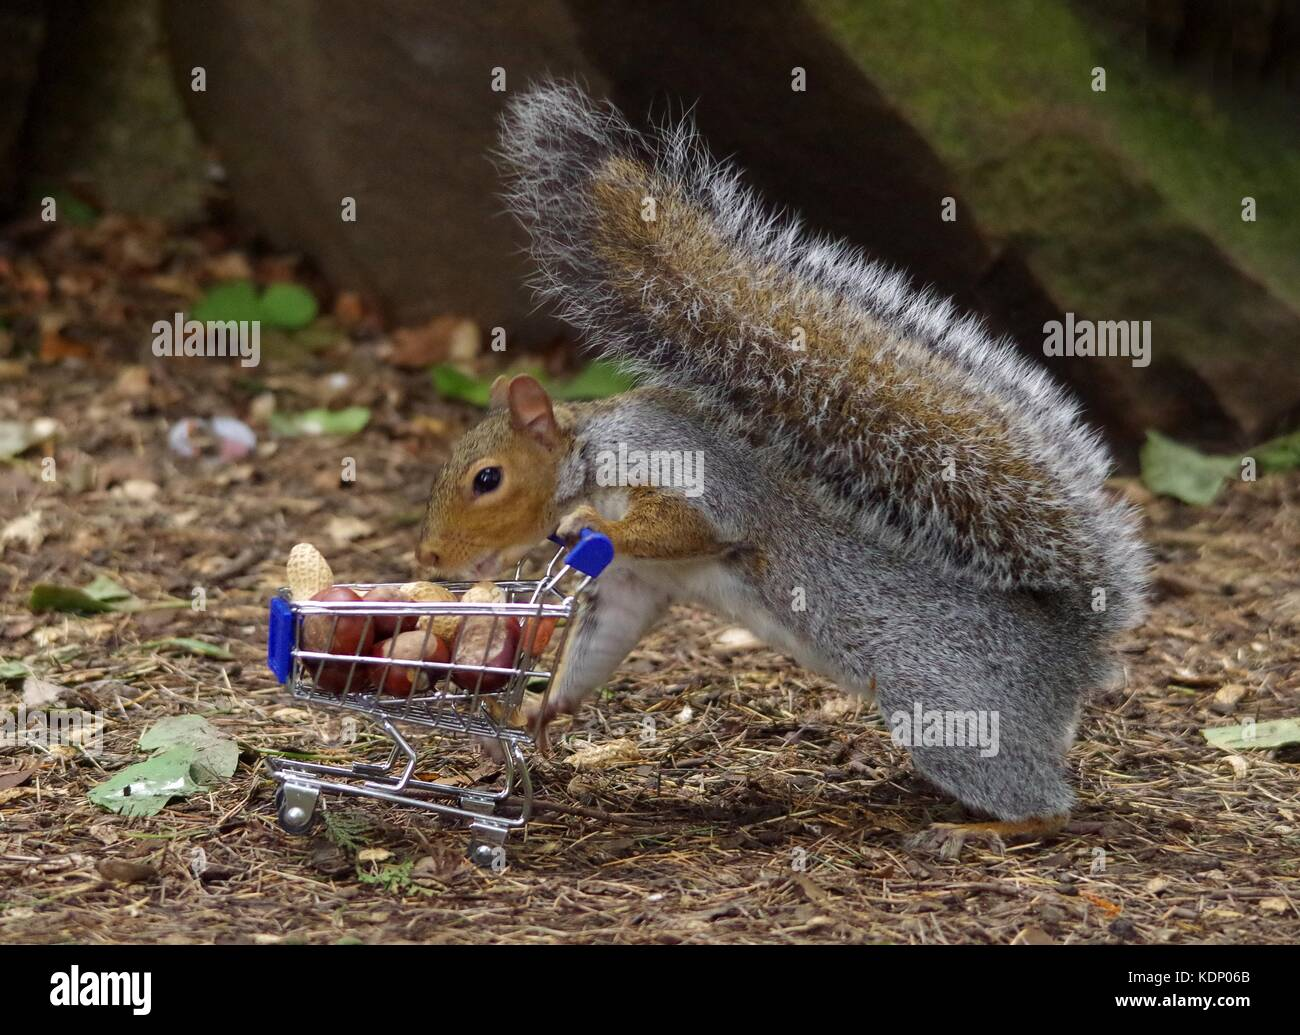 Grey squirrel pushing shopping cart trolley full of nuts in park - Stock Image